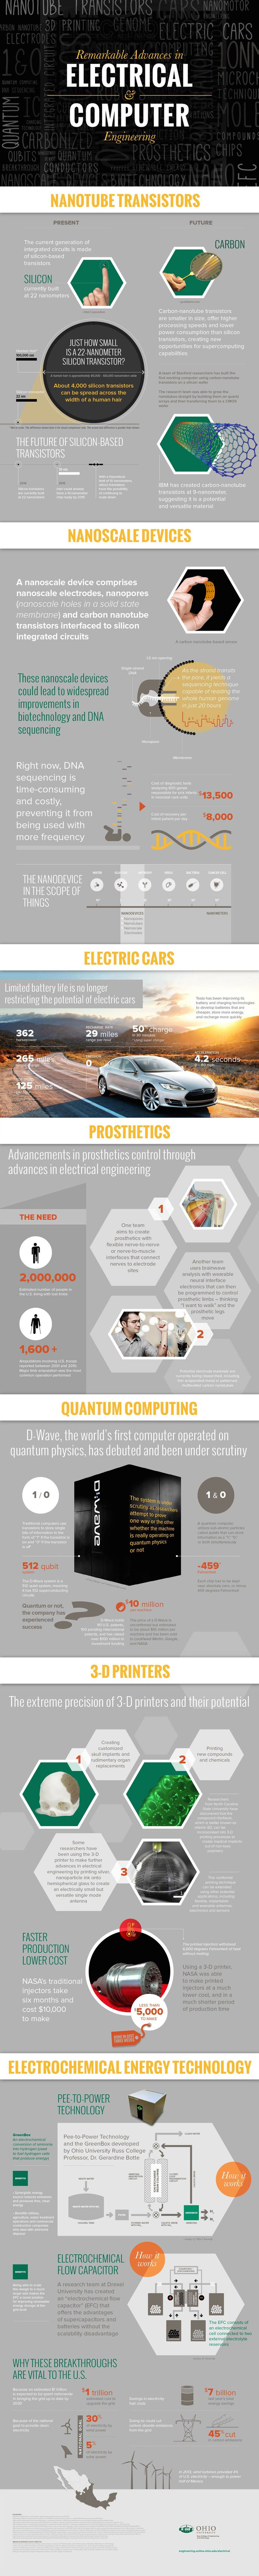 best ideas about computer engineering computer infographic remarkable advances in electrical and computer engineering nationalengineersweek